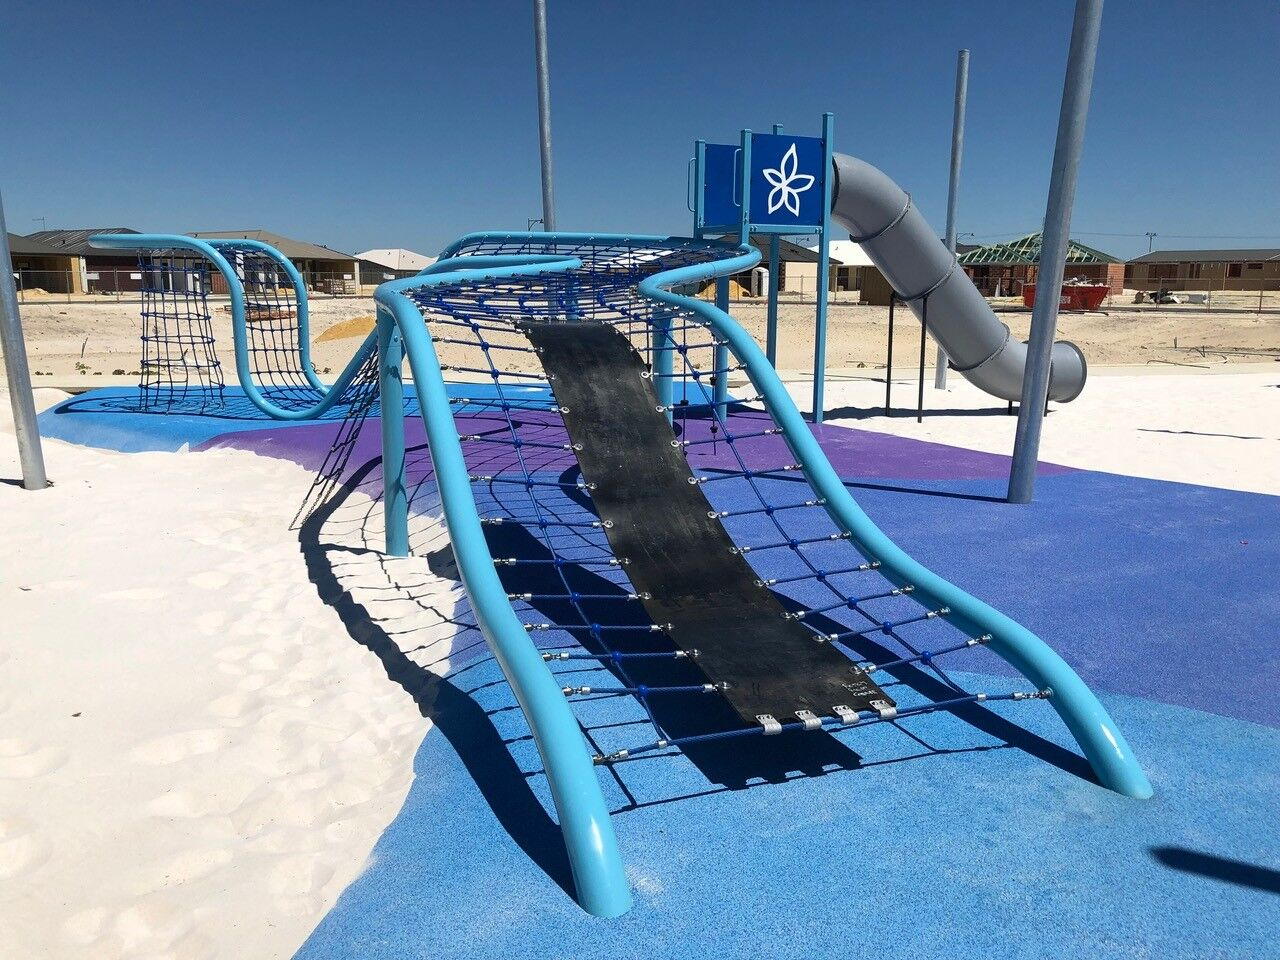 Playground Stainless Steel Slide Rope Structure